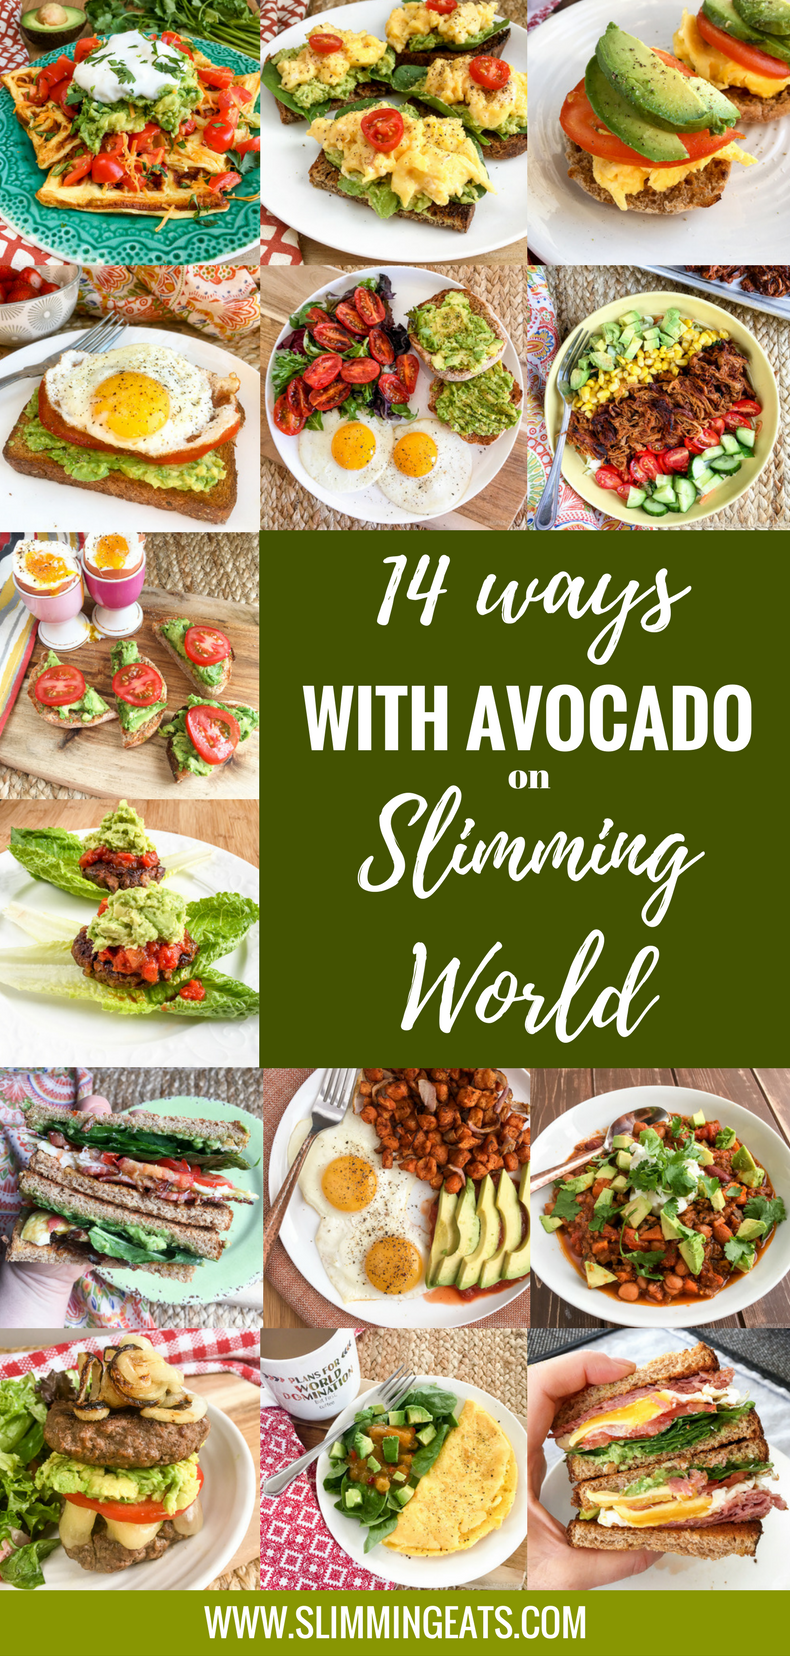 Slimming Eats - Avocado and Slimming World - if you have been avoiding avocado all this time believing it to be really high in syns, you need to read this post. 14 ways to enjoy avocado on Slimming World